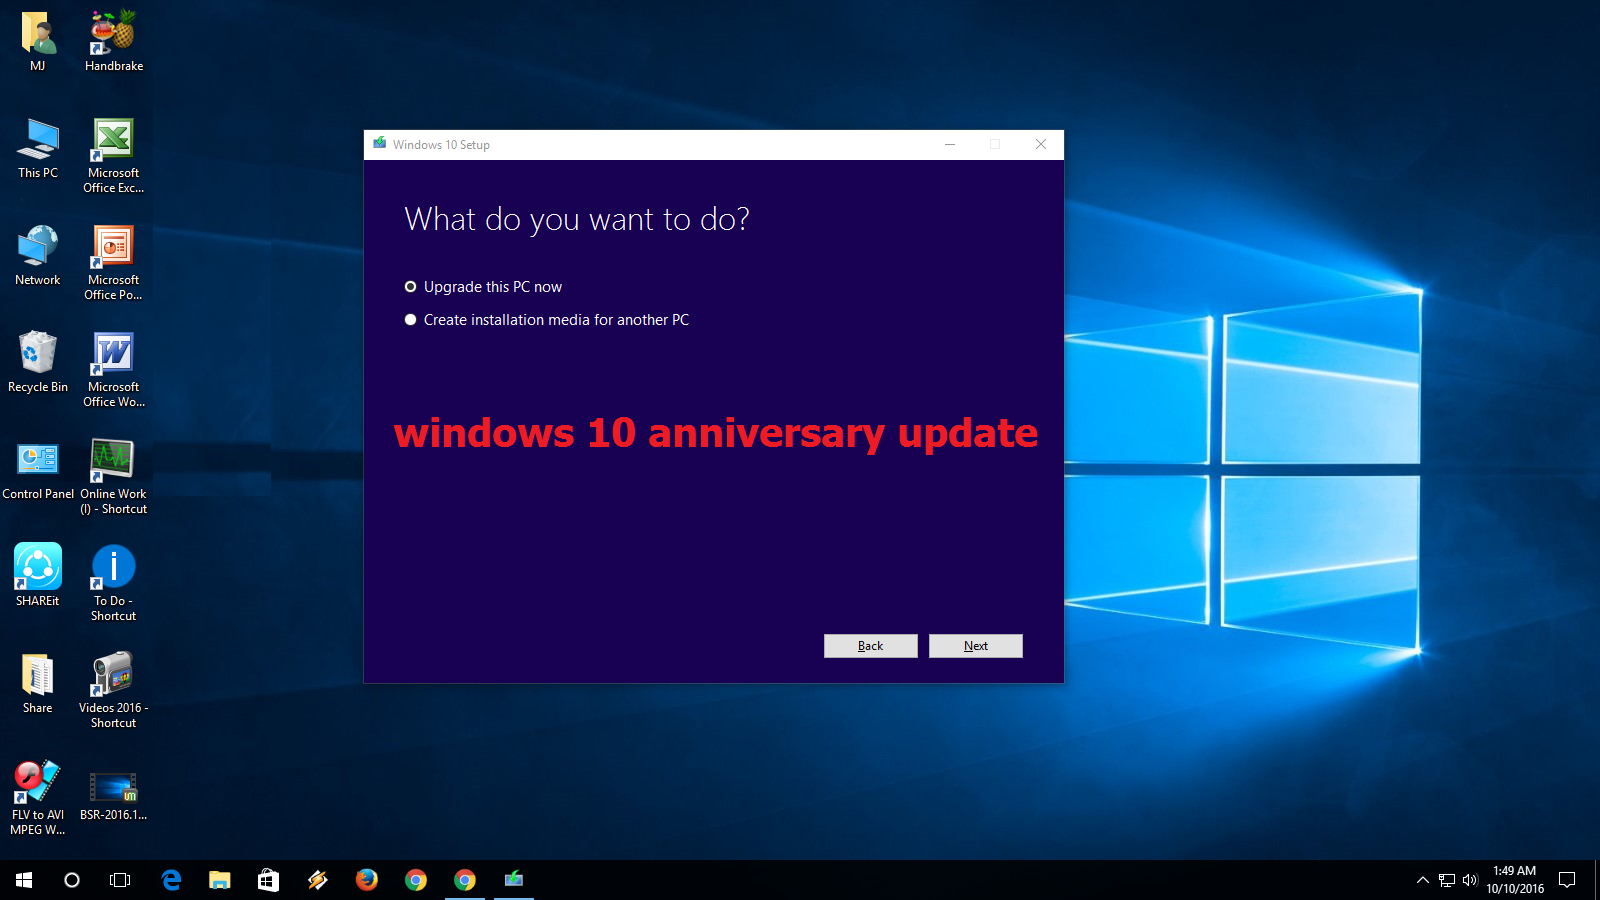 windows 10 setup getting updates